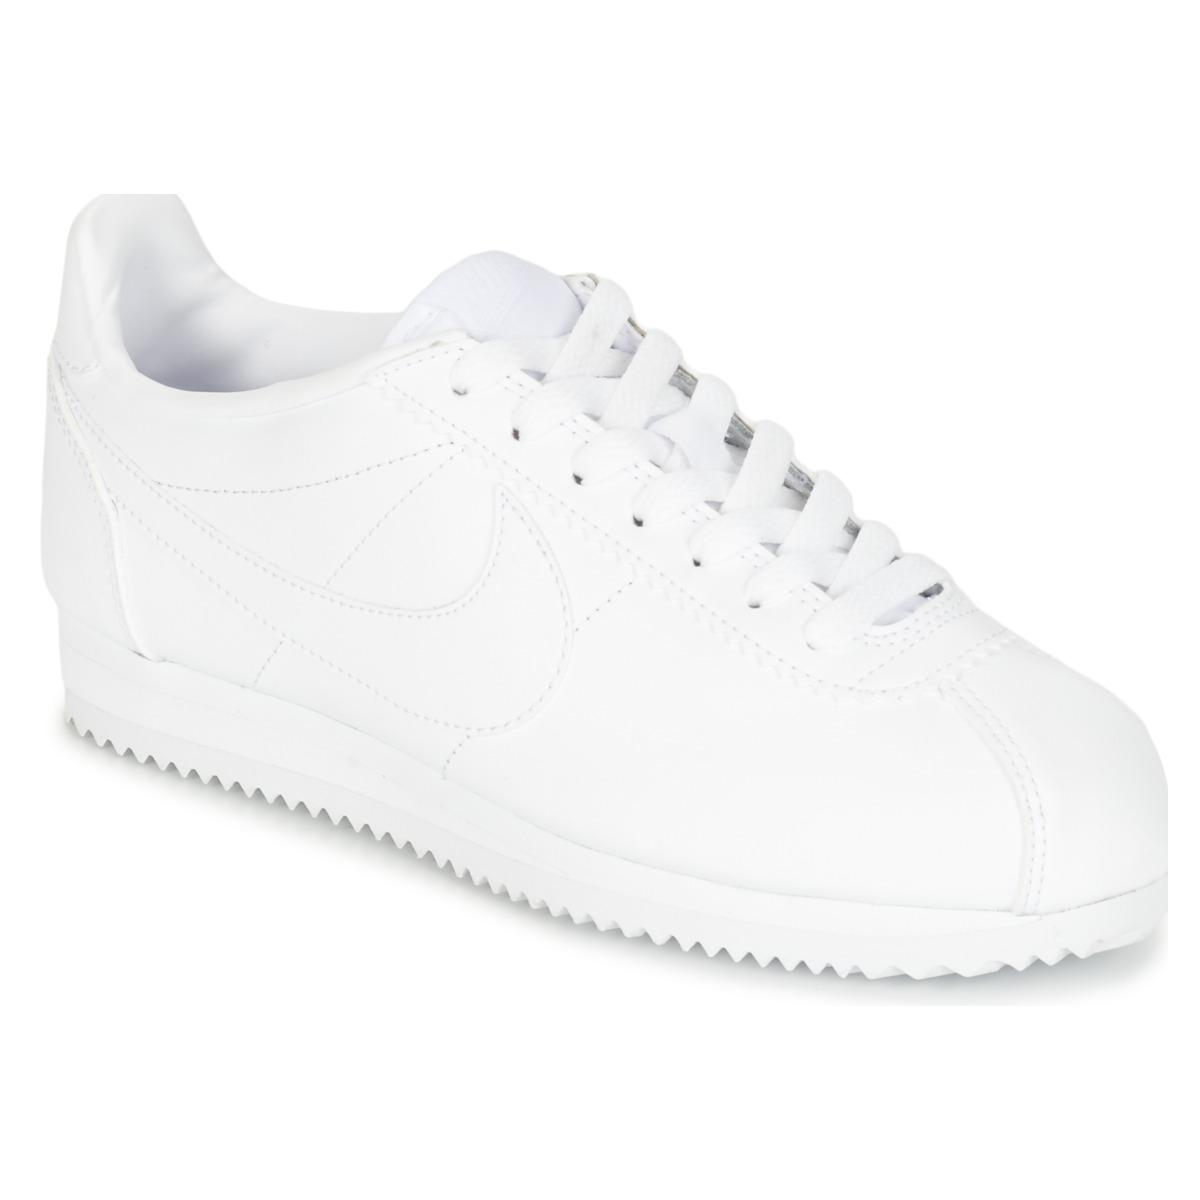 5ba2a01483 Nike Classic Cortez Leather W Women s Shoes (trainers) In White in ...